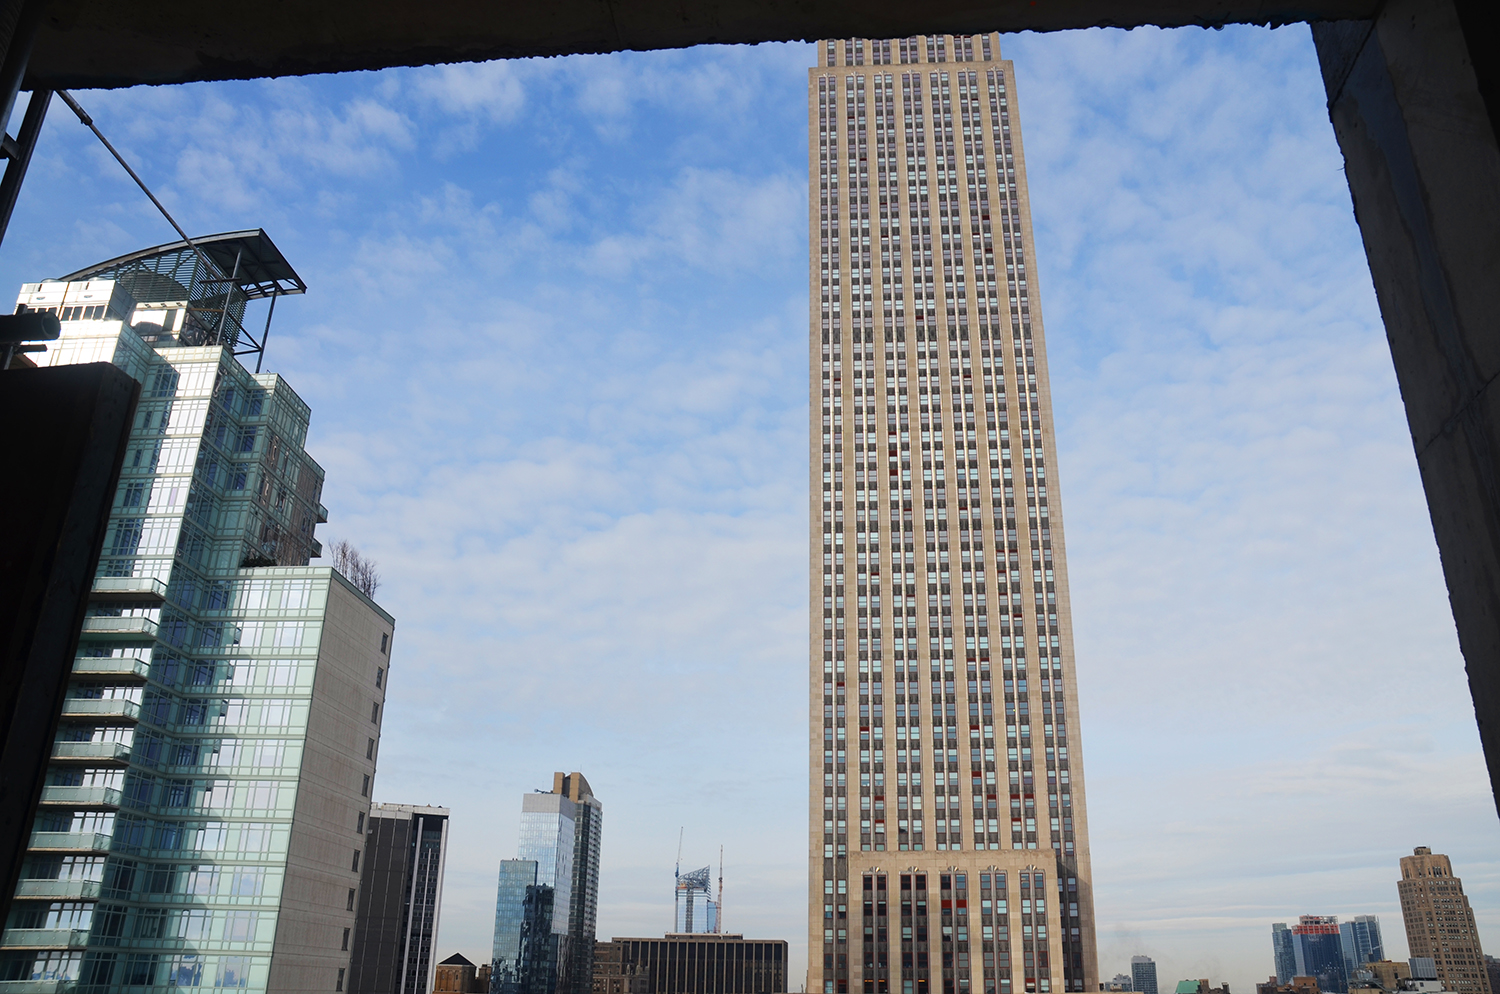 The Empire State Building as seen from 172 Madison Avenue.